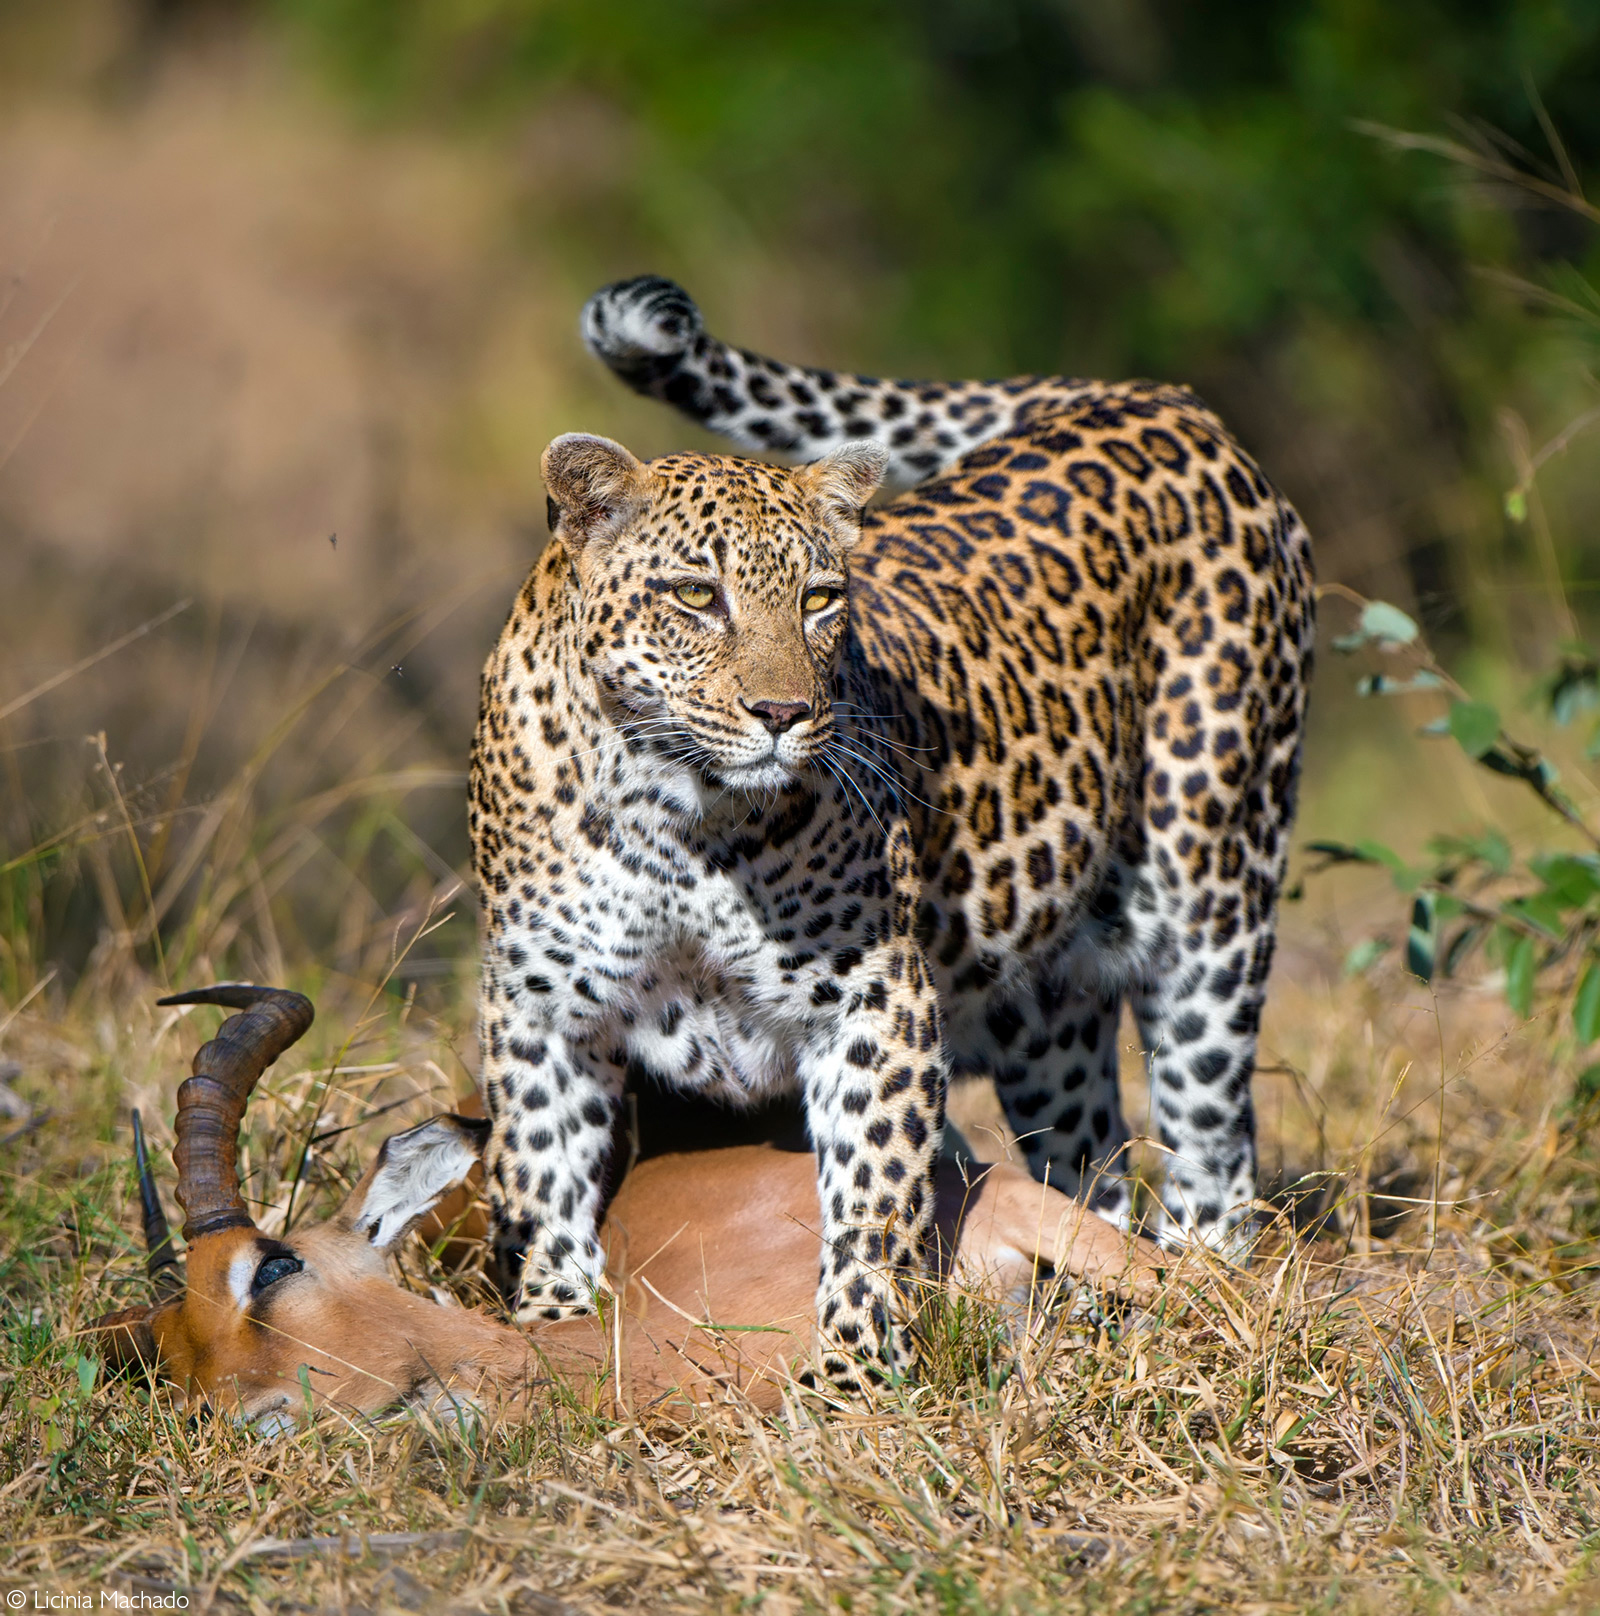 Female leopard with impala kill. Kruger National Park, South Africa © Licinia Machado